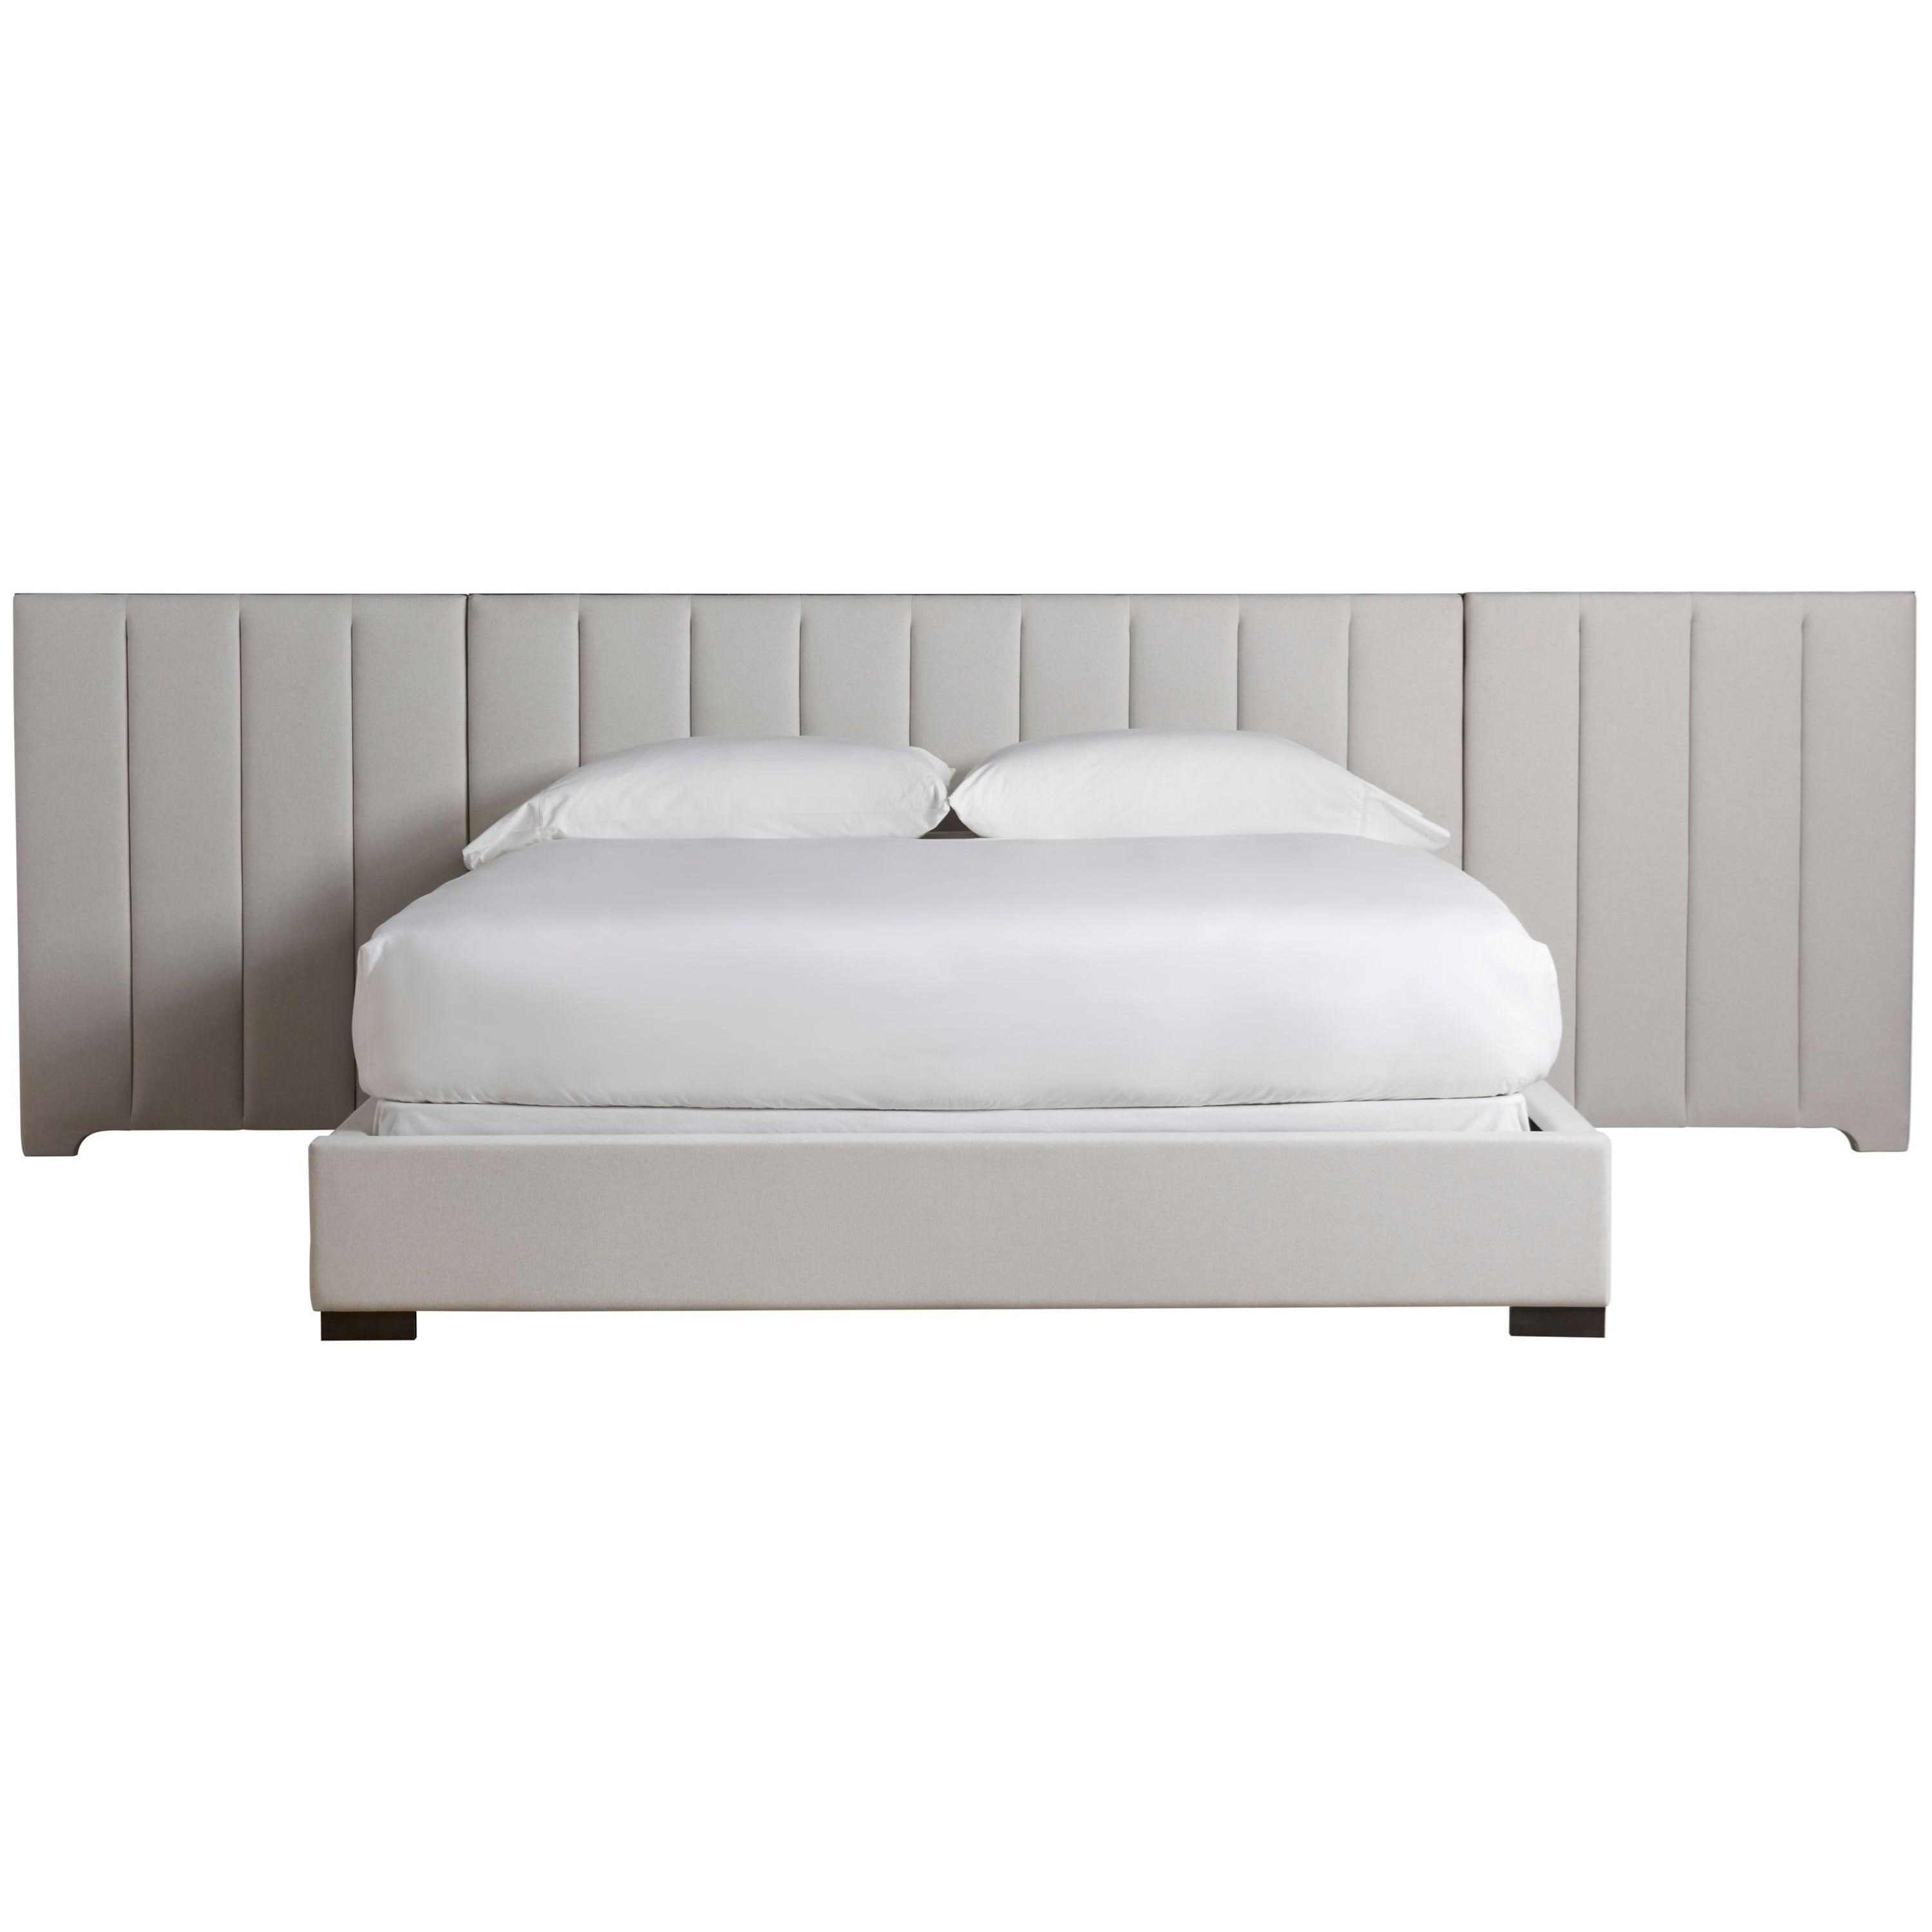 Nina Magon 941 Magon Queen Upholstered Bed w/ Wall by Universal at Baer's Furniture